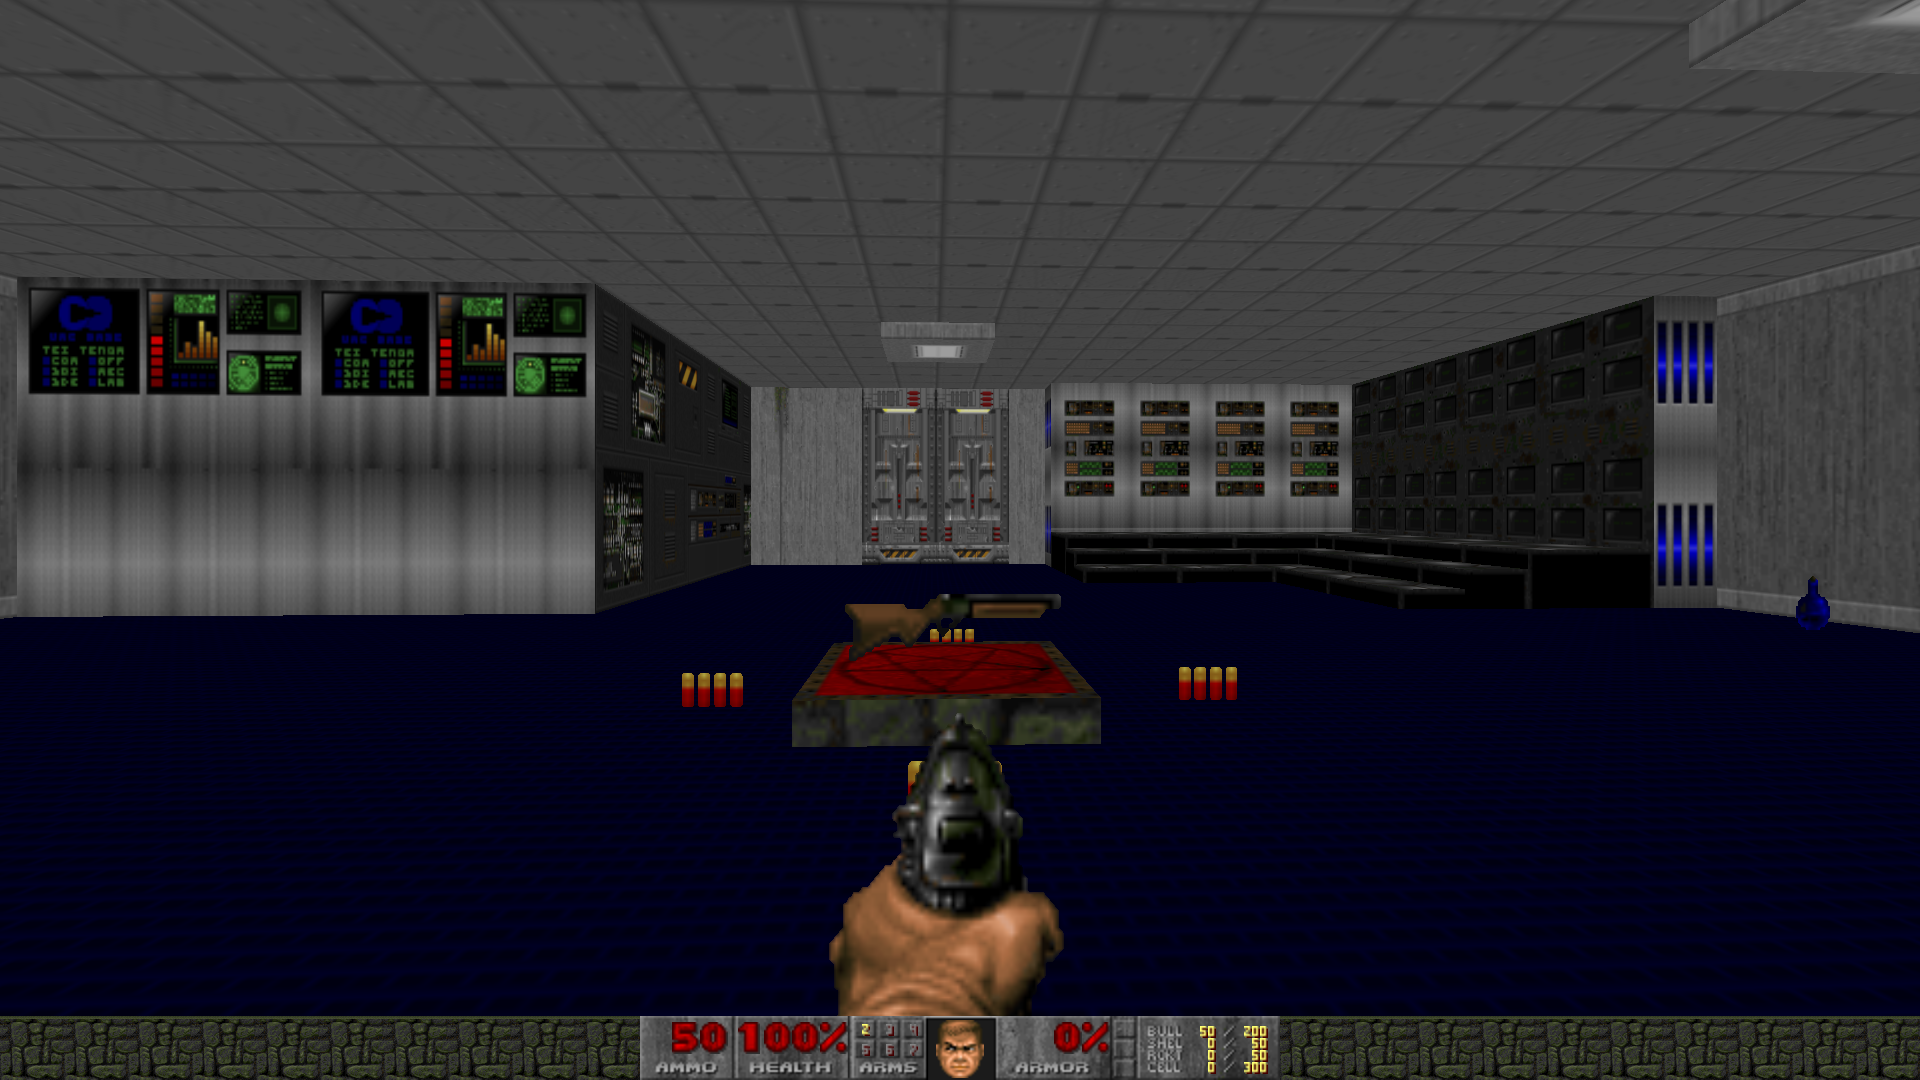 My first doom map: Looking for feedback for future projects